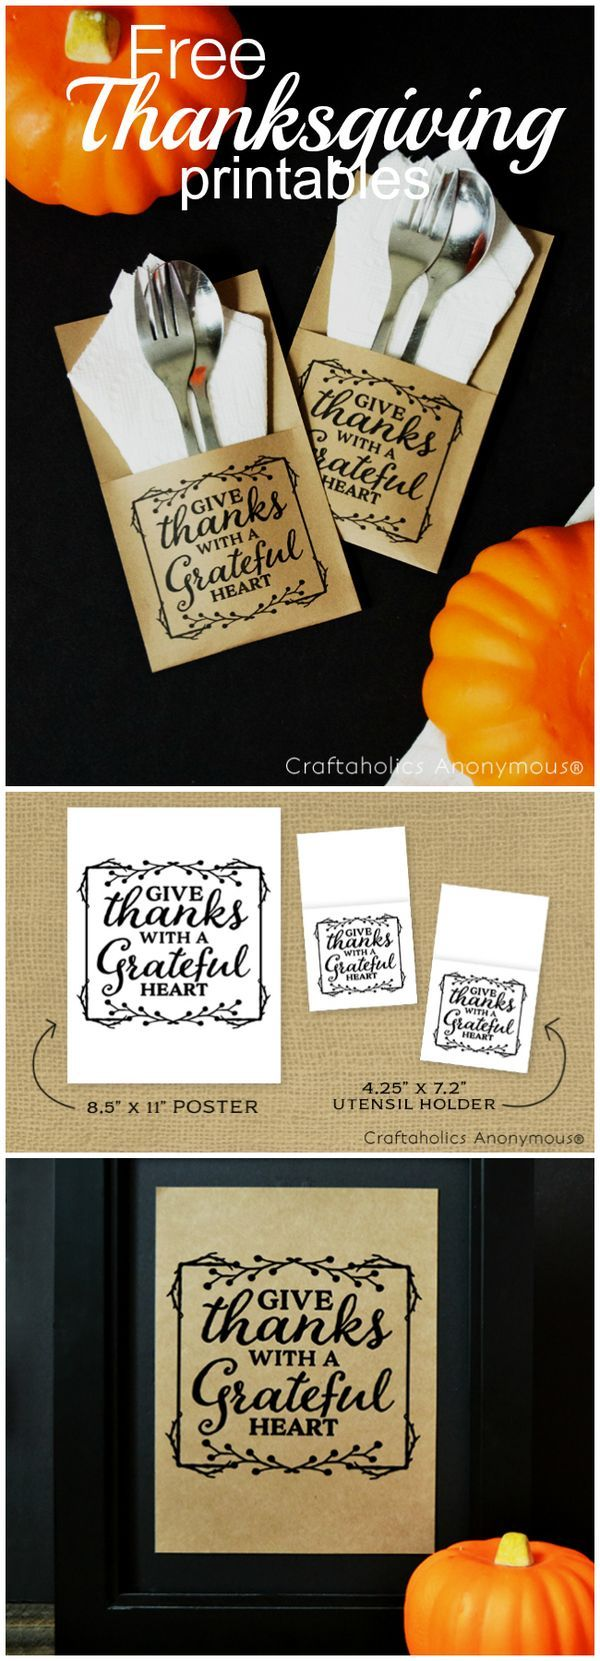 Free Thanksgiving Day Printables/crafts - quote + DIY utensil holder idea. Print on kraft paper for a rustic look! www.CraftaholicsAnonymous.net